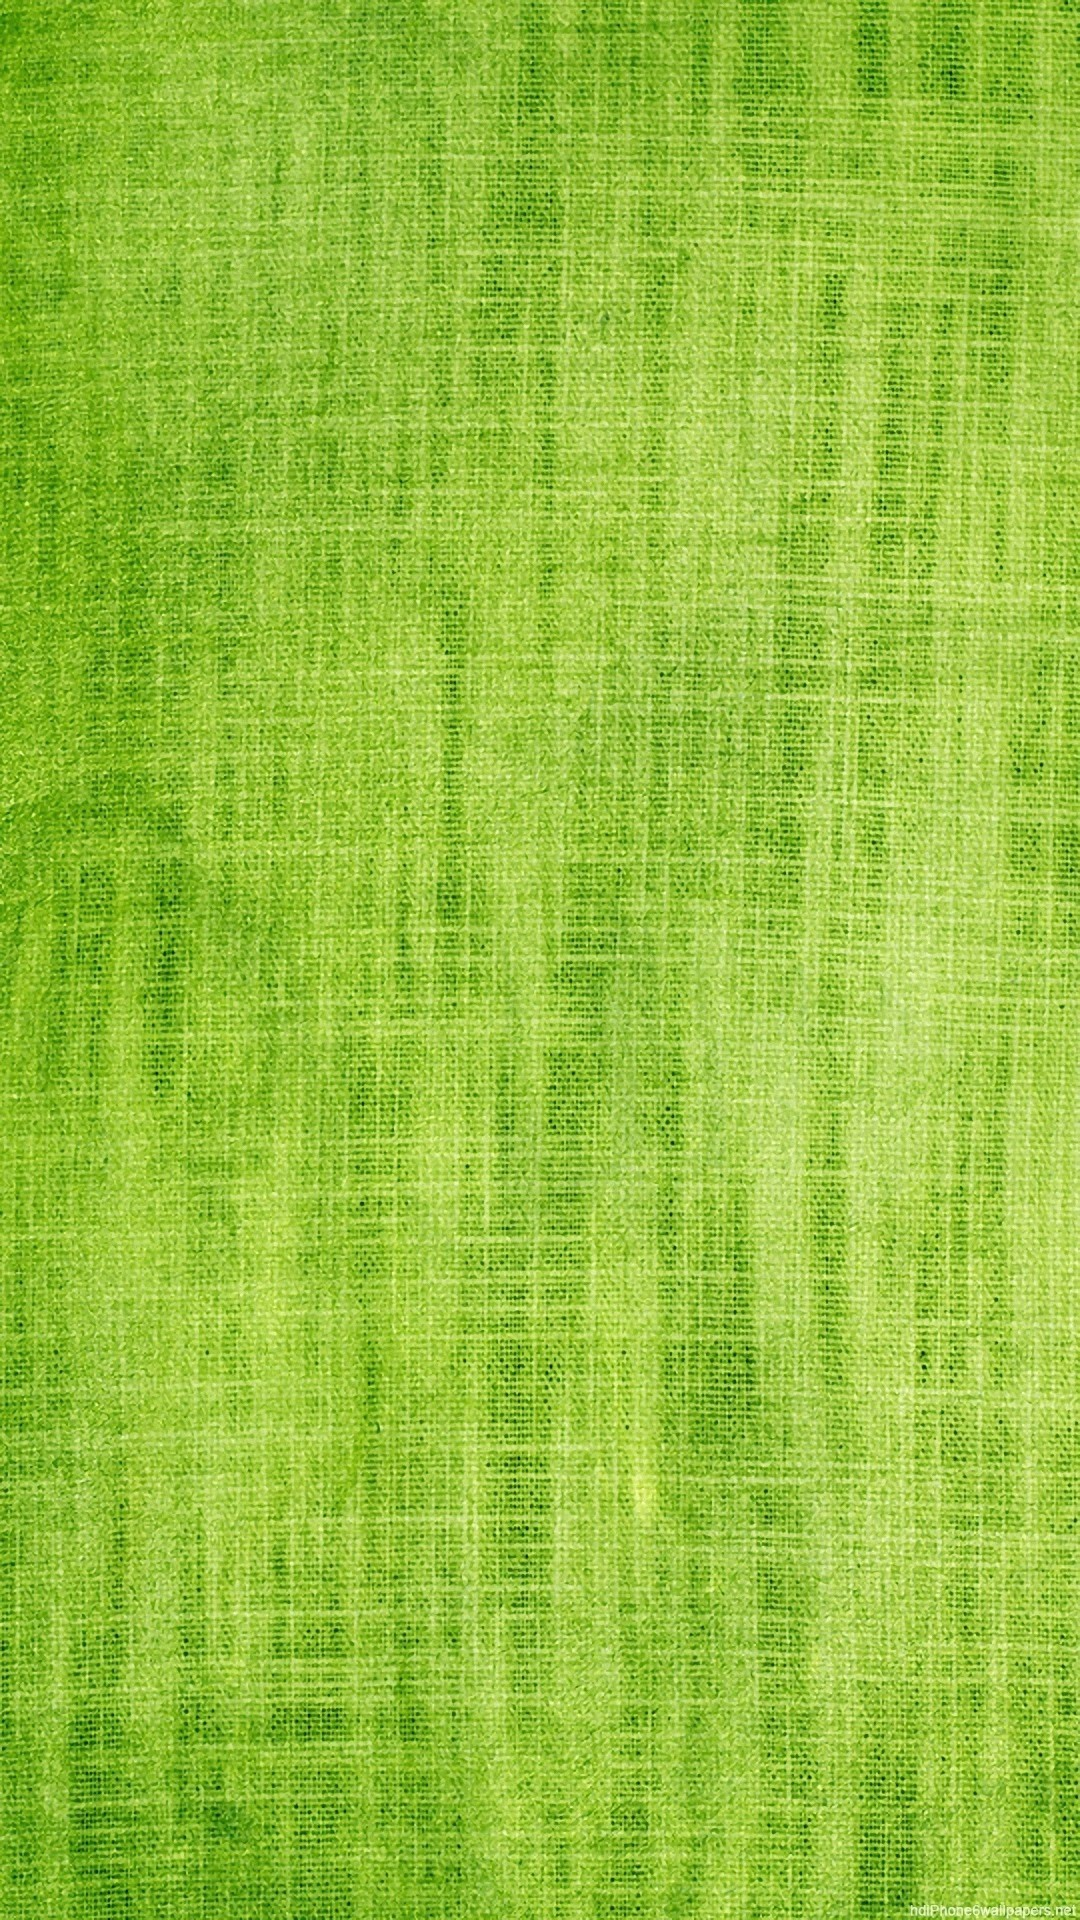 Green iPhone hd wallpaper